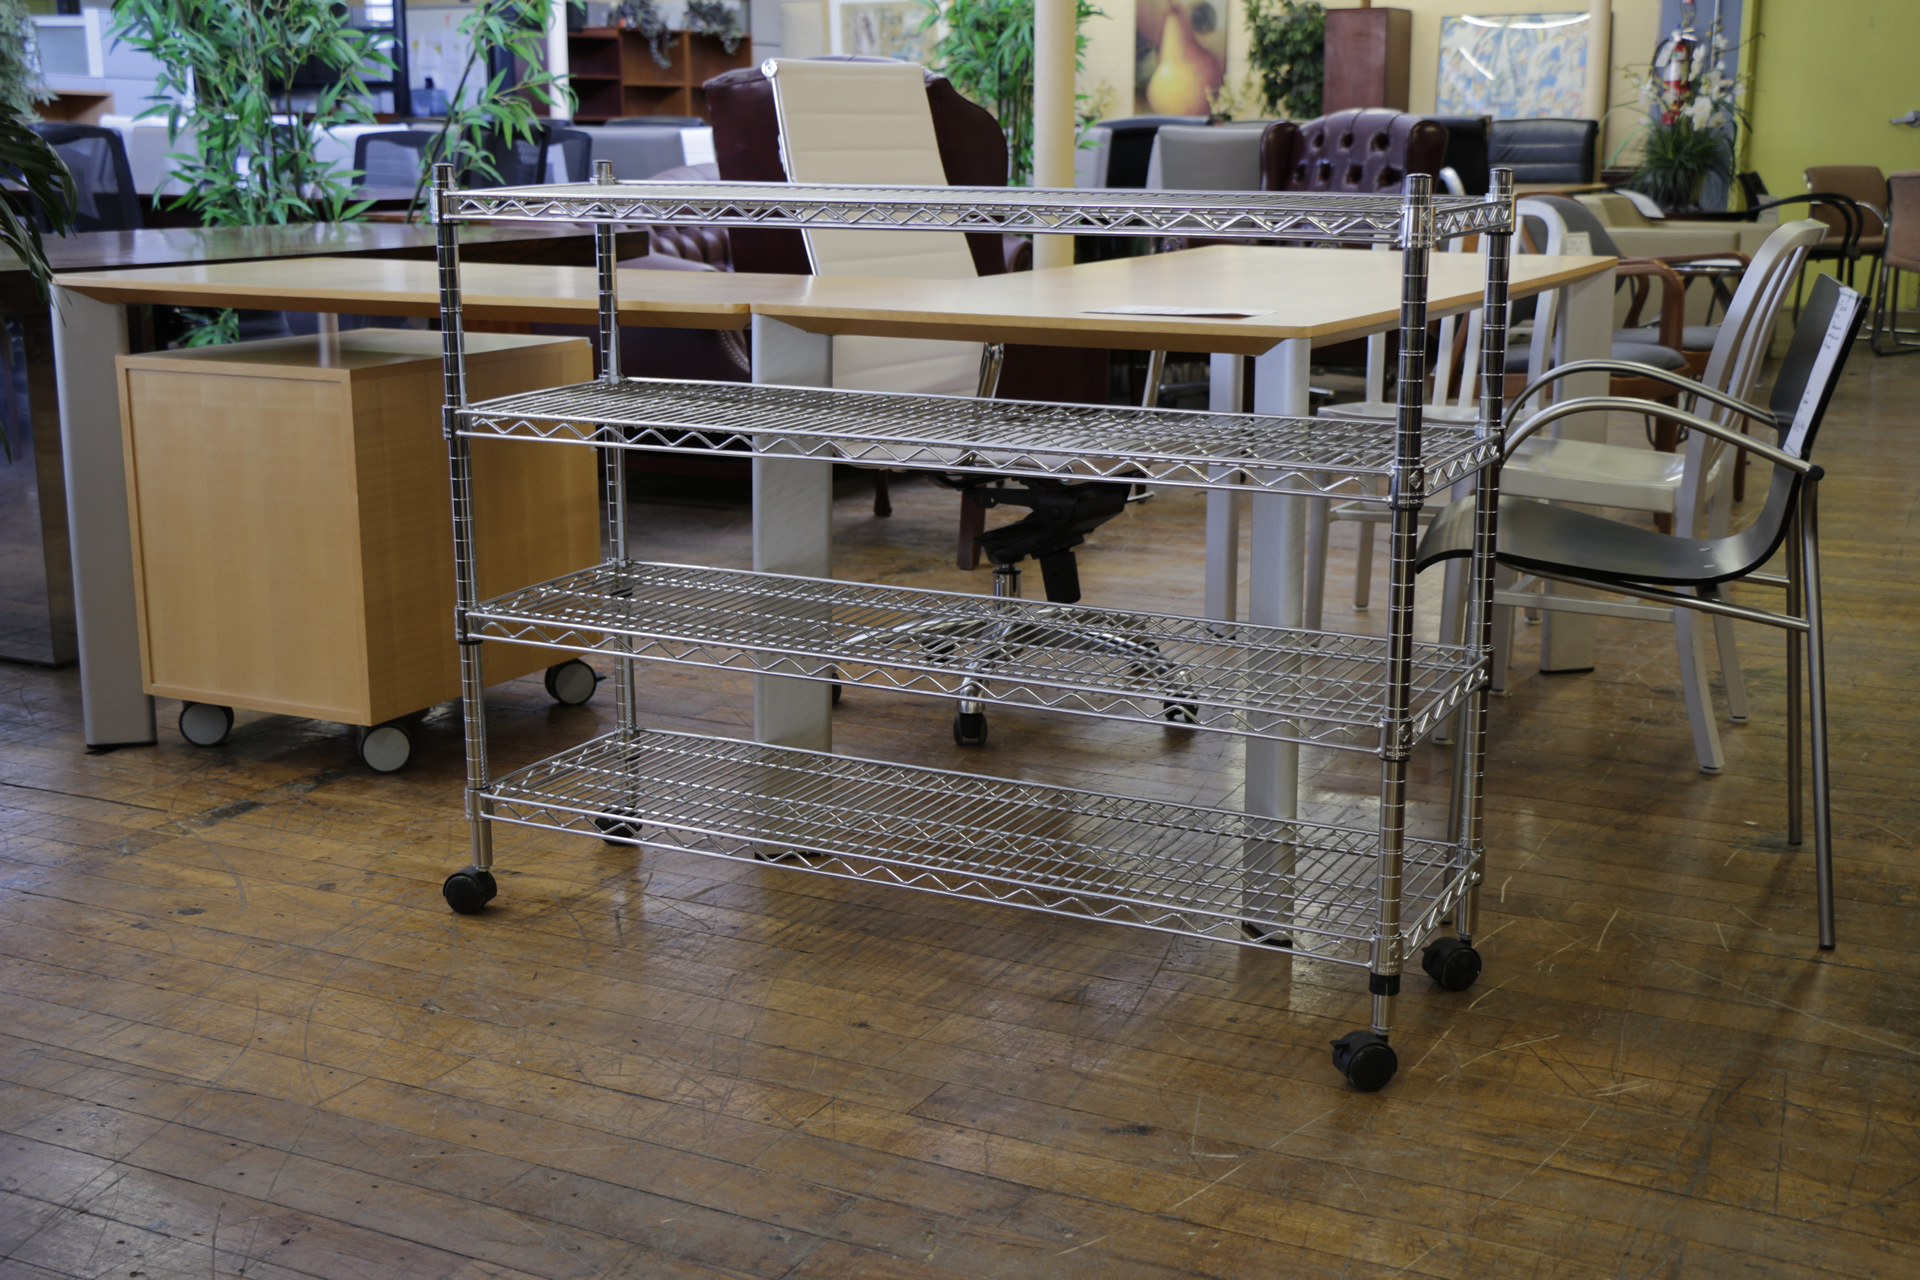 peartreeofficefurniture_peartreeofficefurniture_mg_3185.jpg